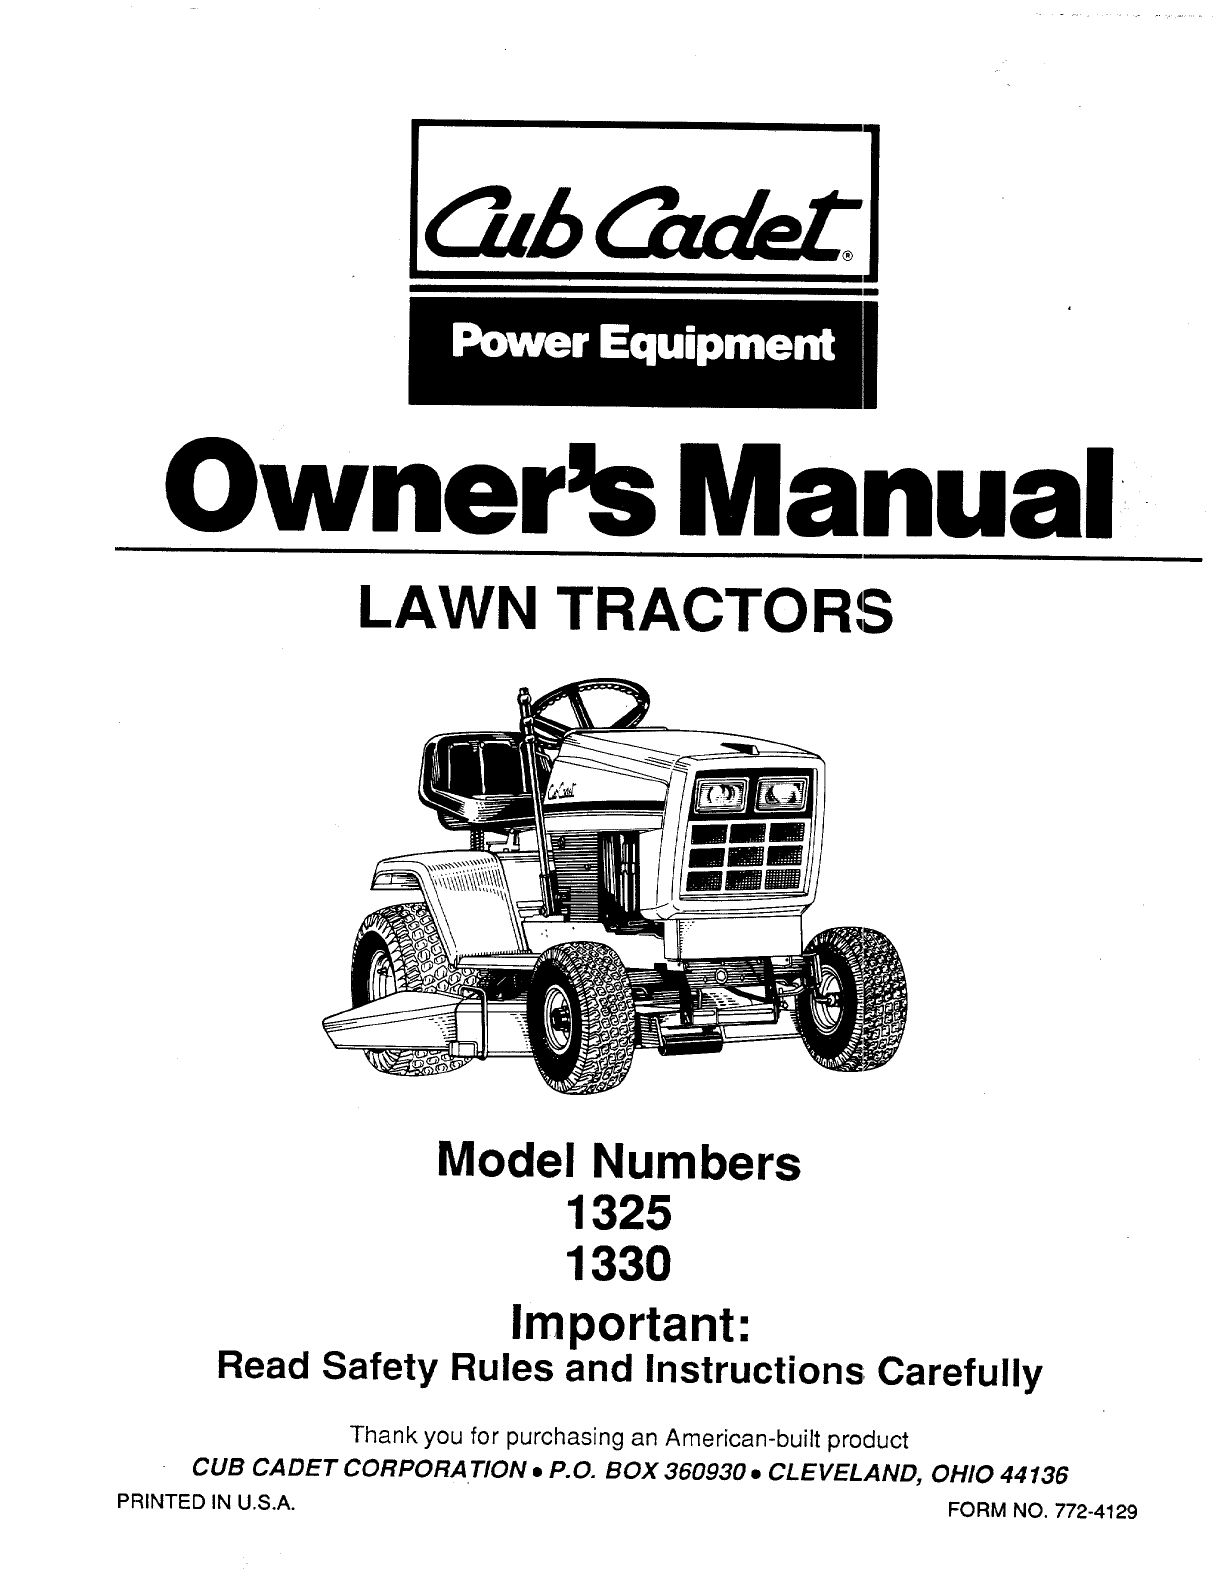 855a42c2 4361 4265 addd e71c5f7f7ccd bg1 cub cadet lawn mower 1330 user guide manualsonline com cub cadet 1330 wiring diagram at gsmportal.co